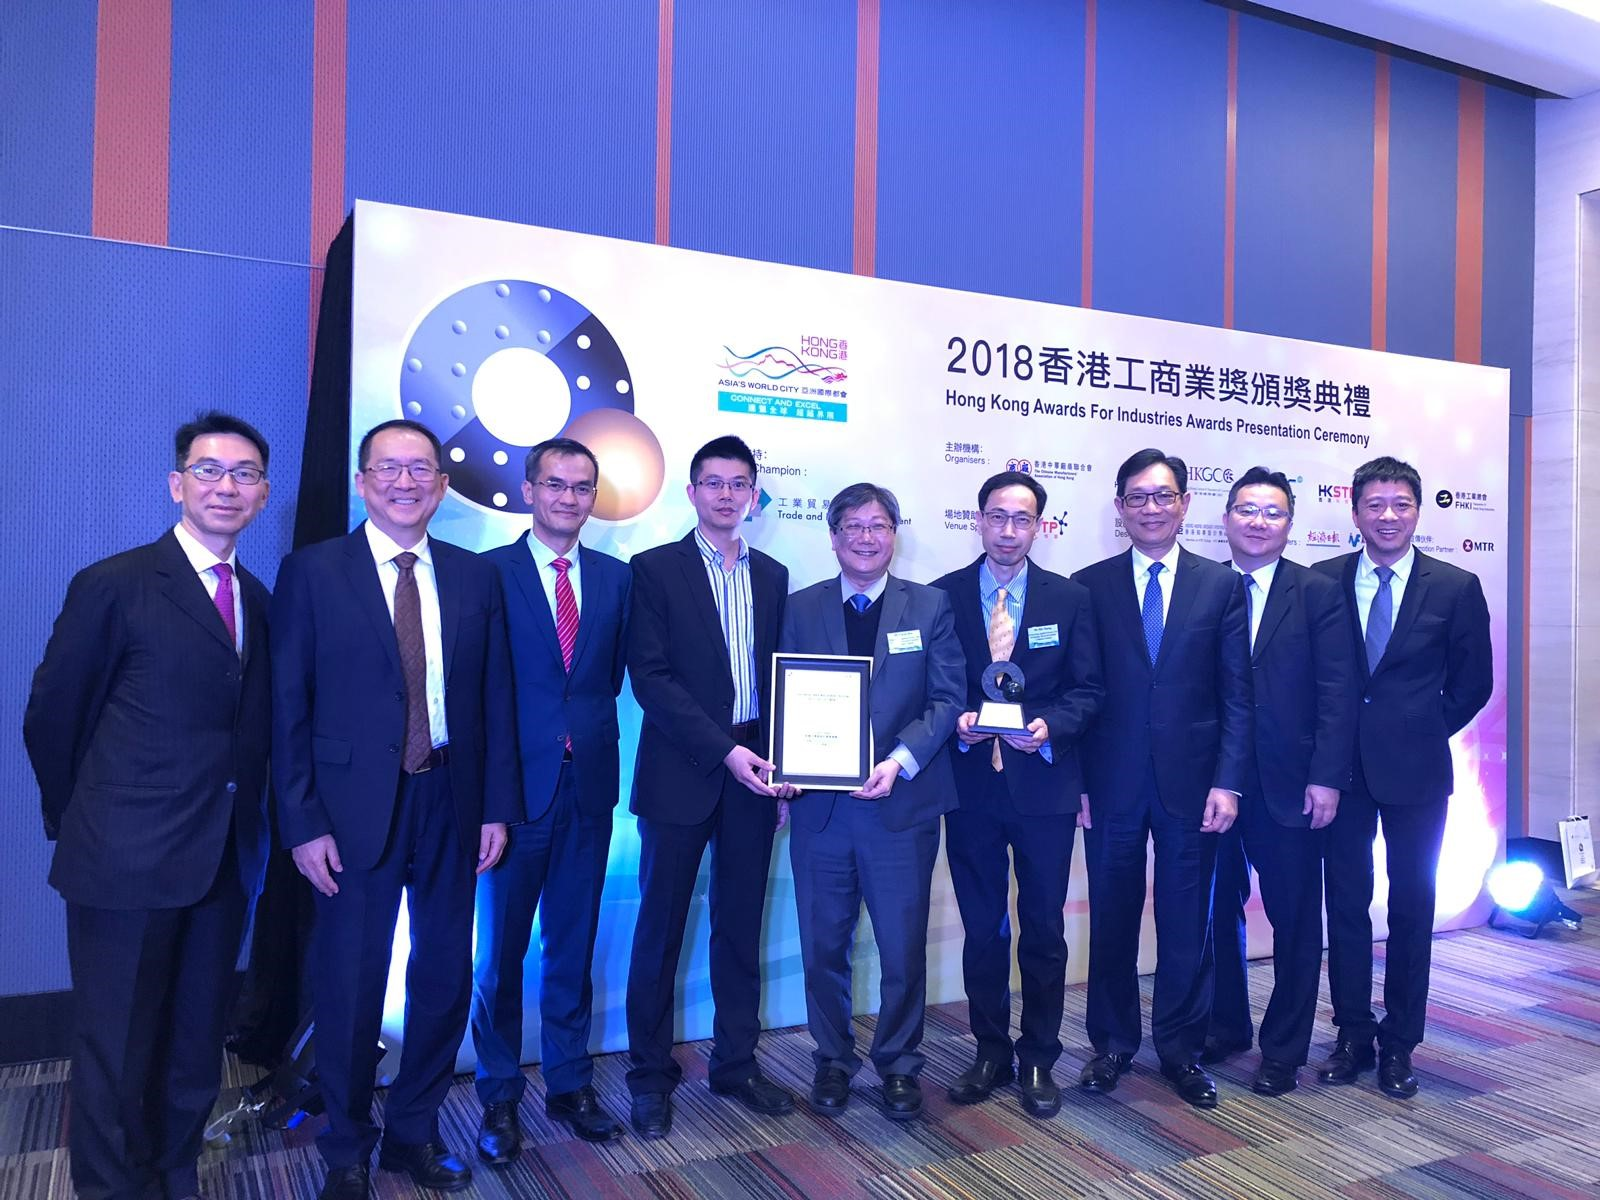 ASTRI wins three awards at Hong Kong Awards for Industries (HKAI) 2018